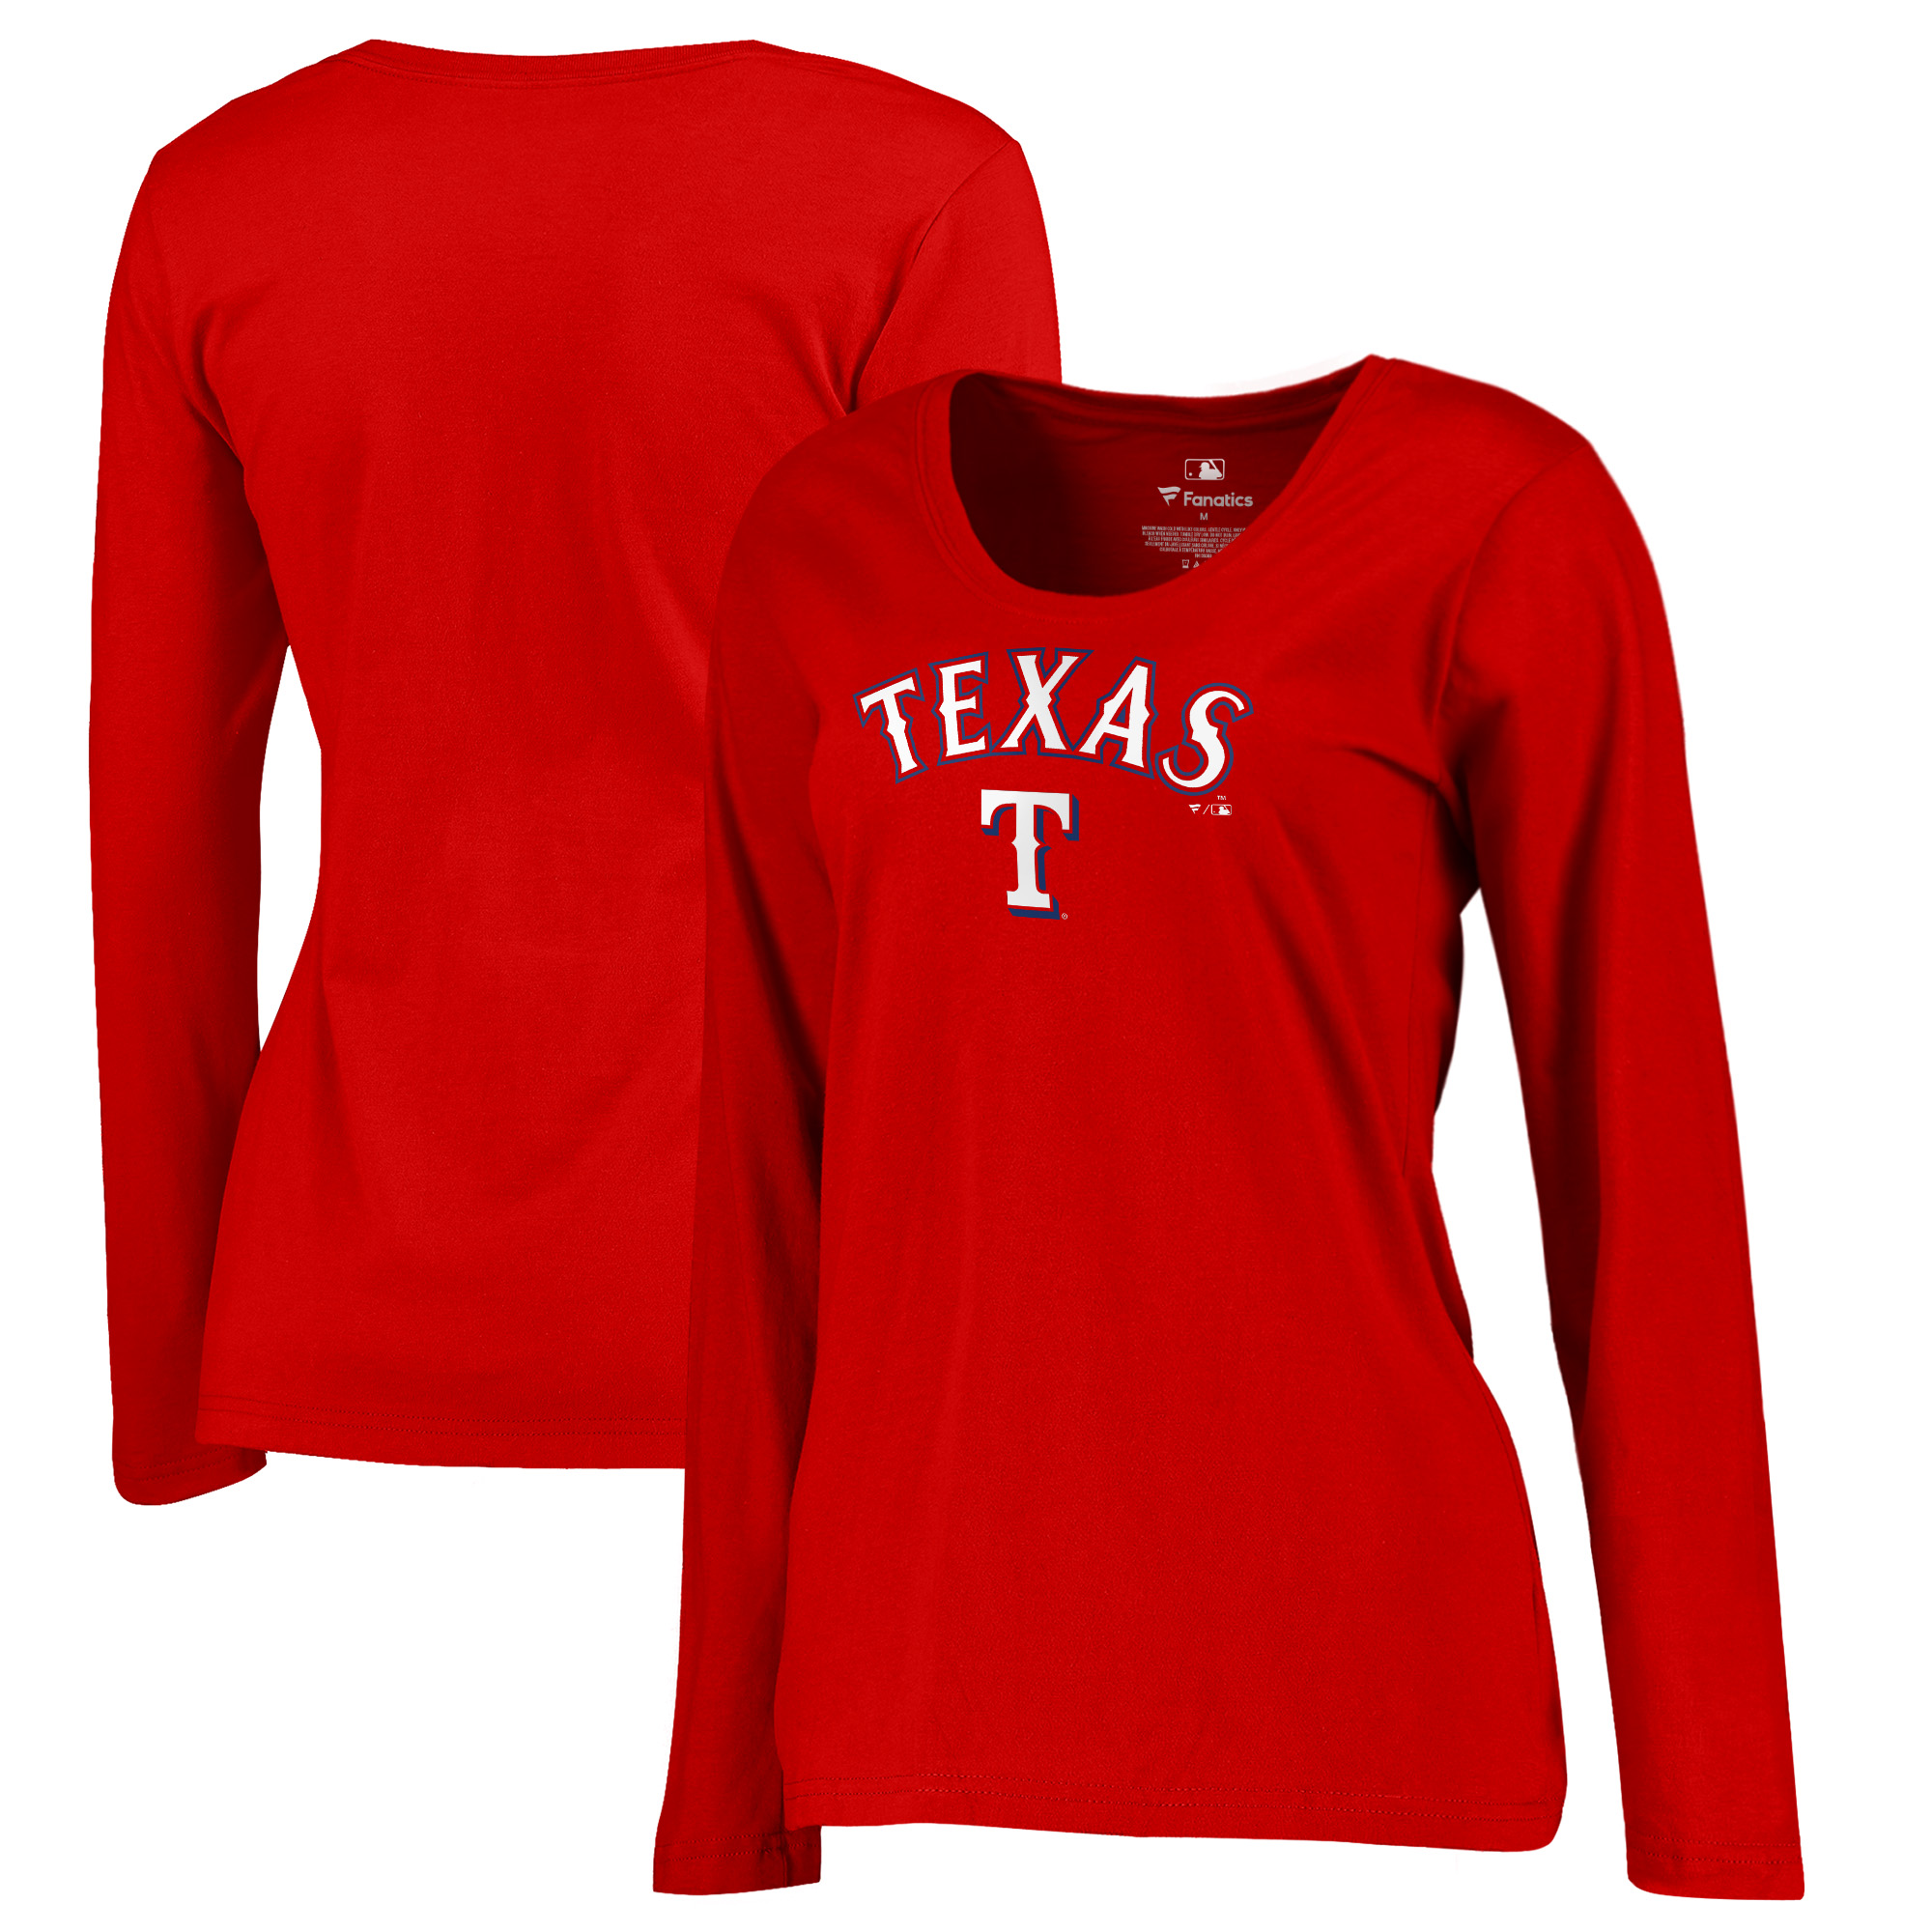 Texas Rangers Fanatics Branded Women's Plus Size Team Lockup T-Shirt - Red